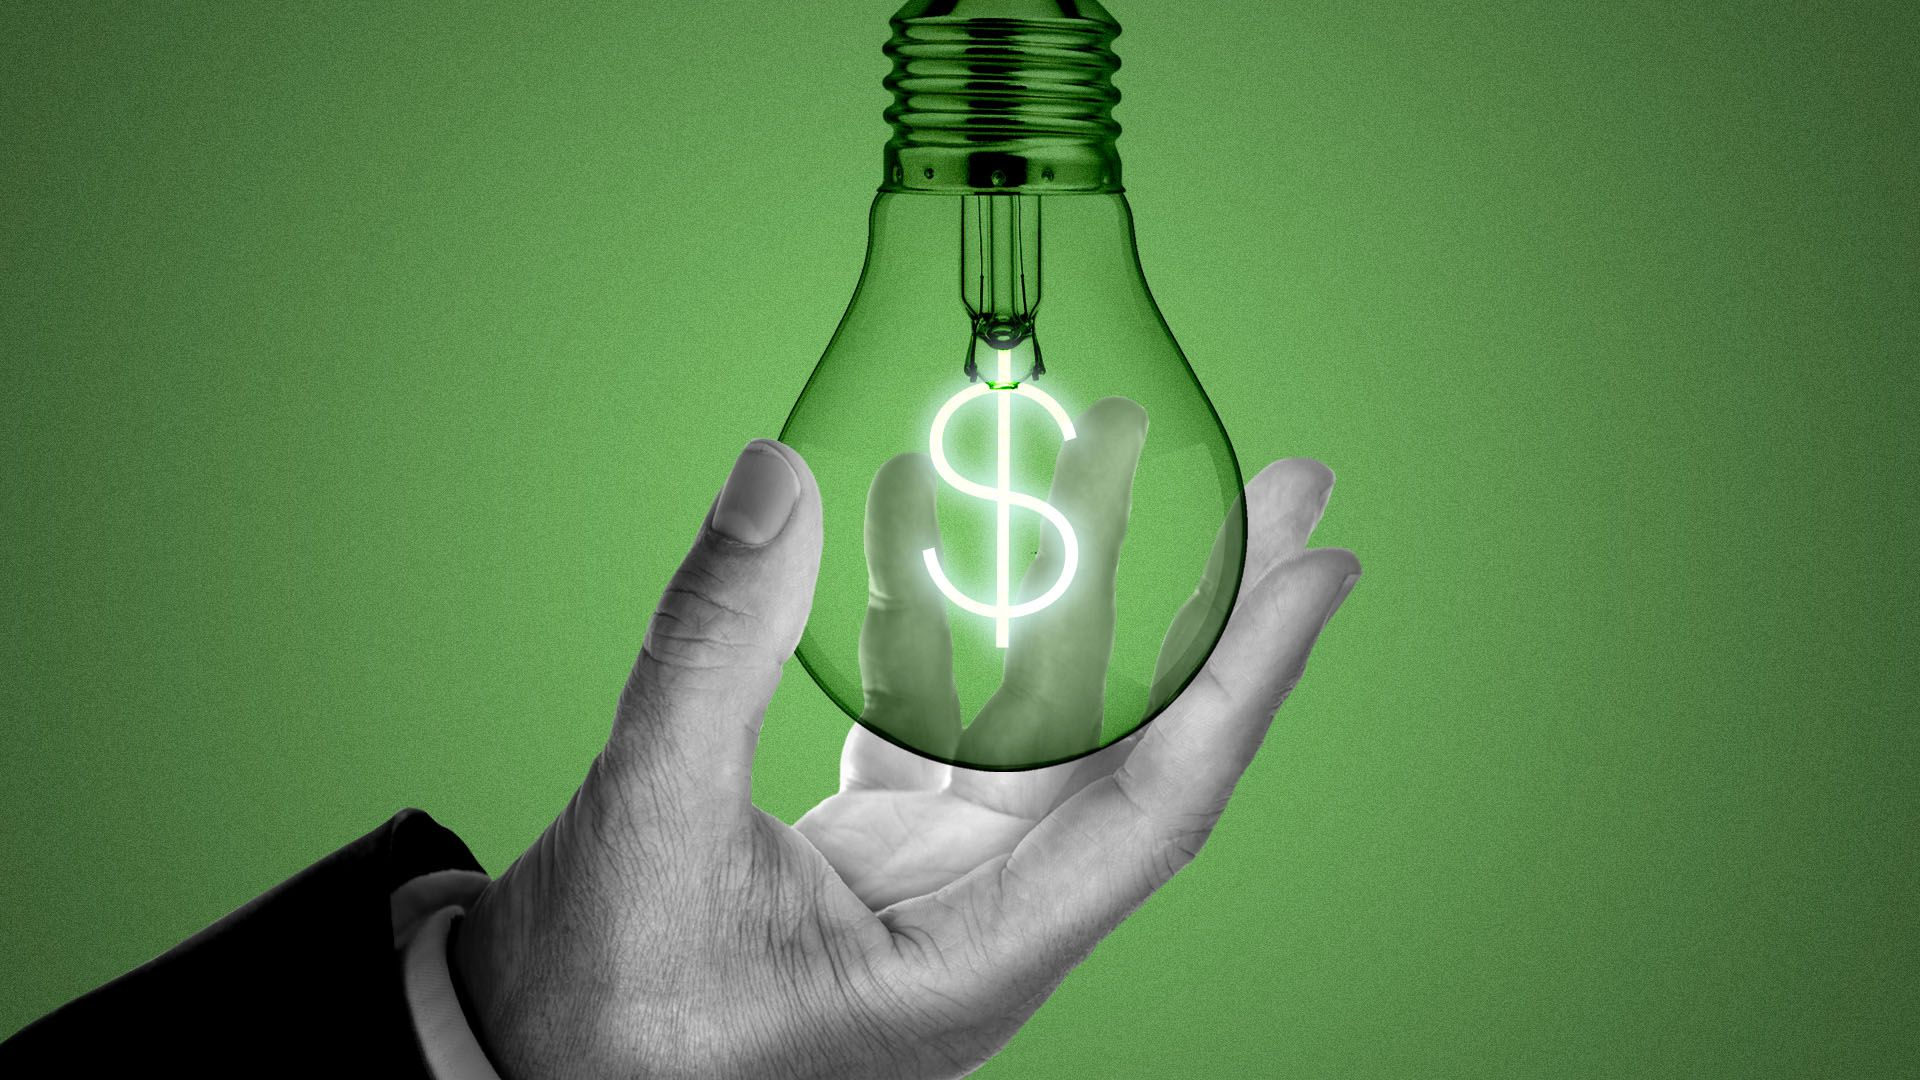 Illustration of a hand screwing in a lightbulb with a dollar sign in the middle